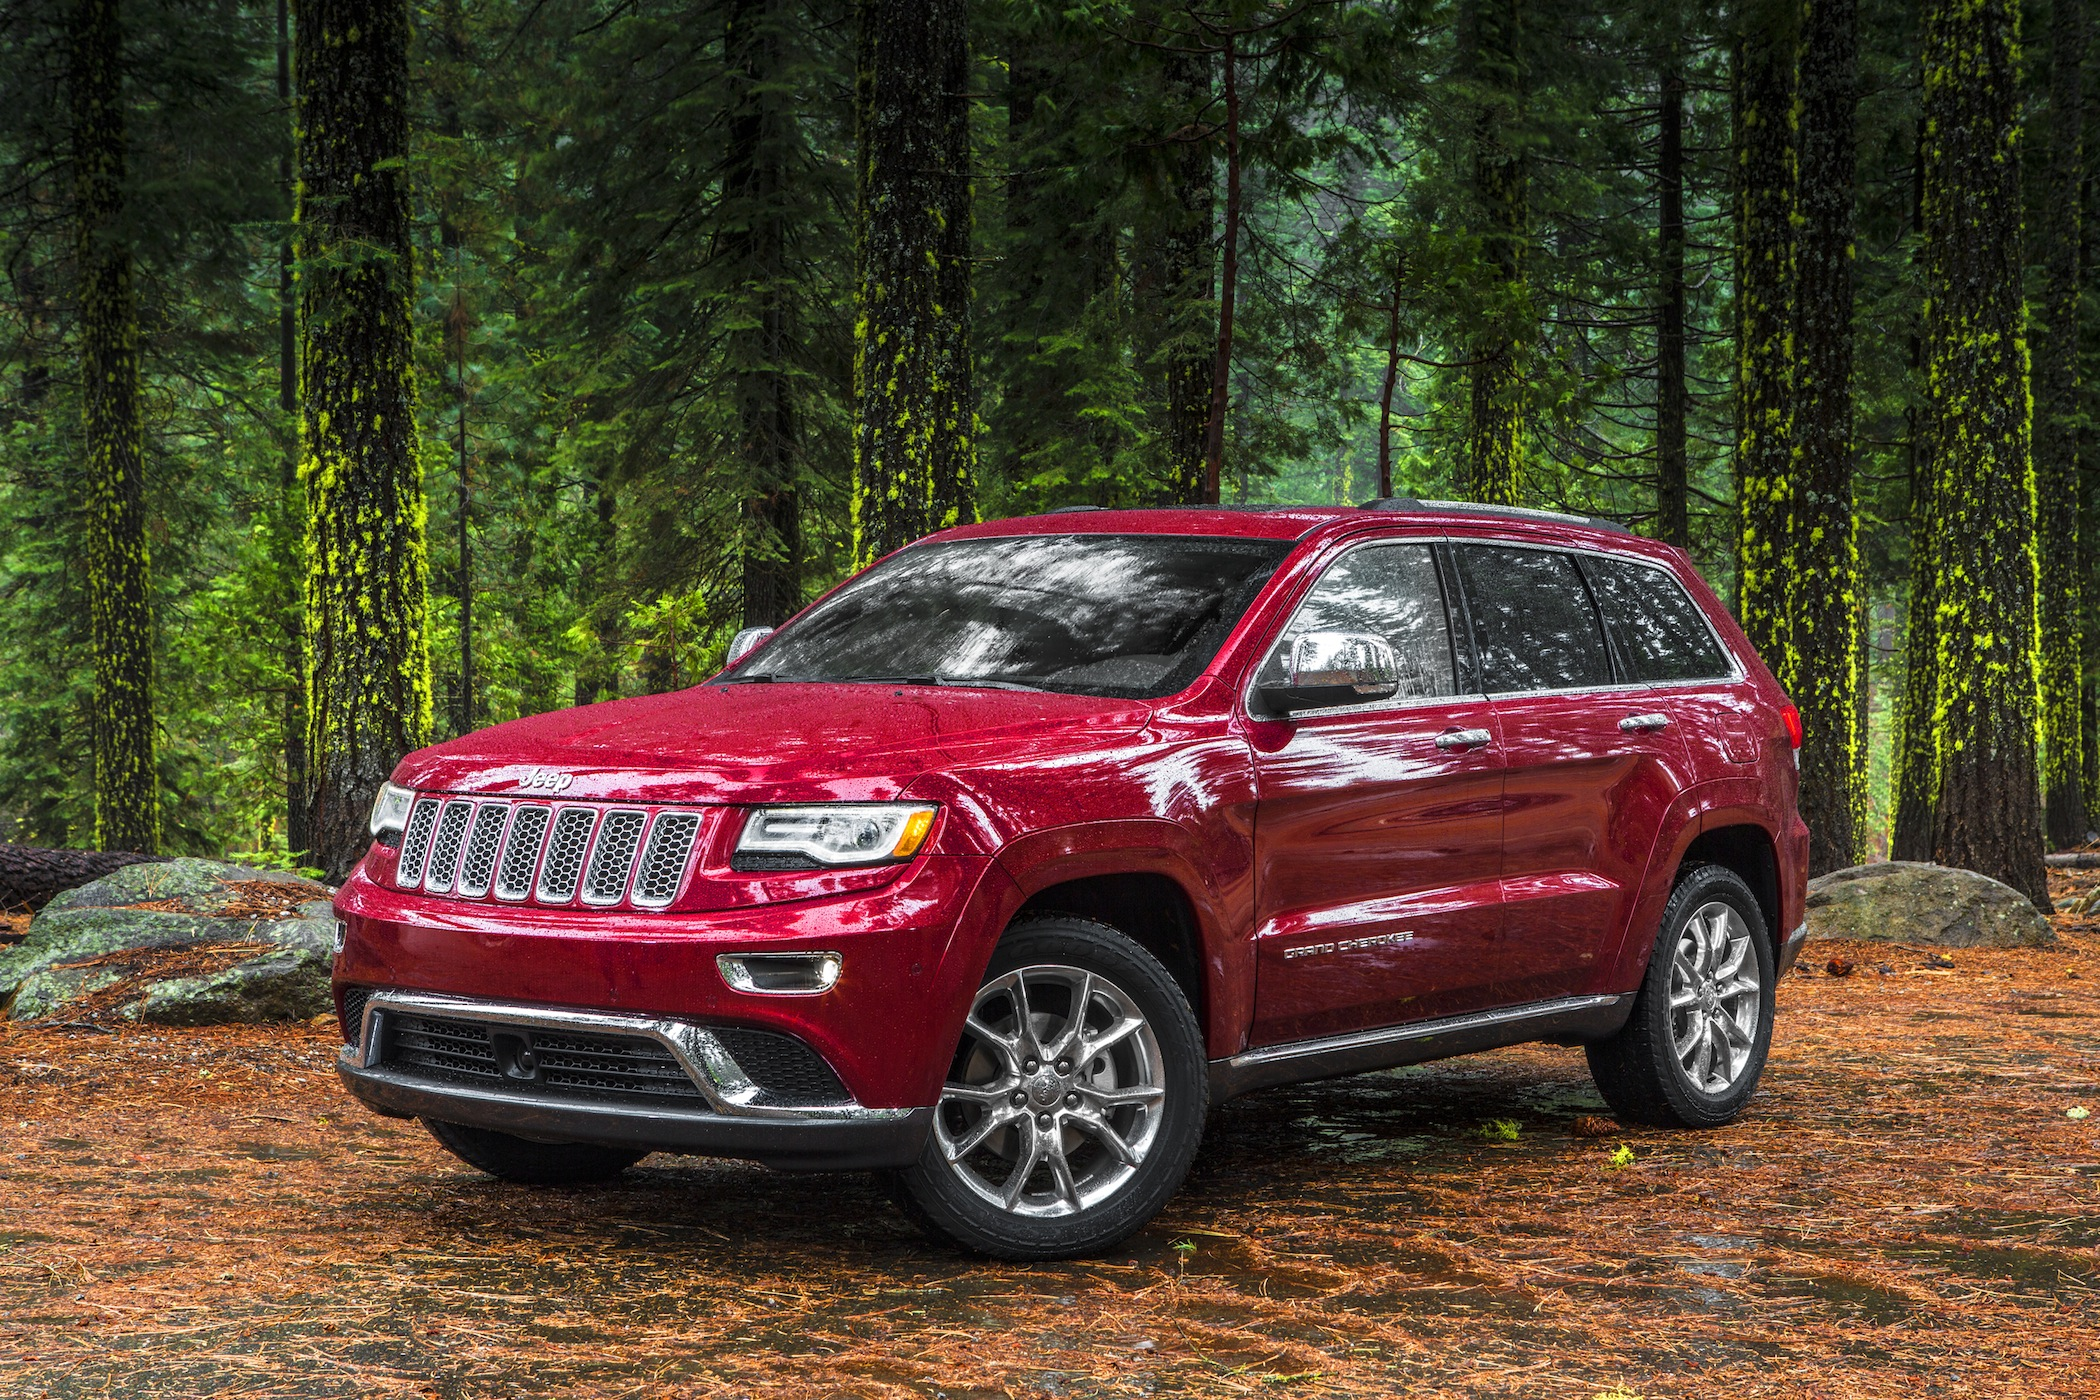 The Evolution of the Jeep Grand Cherokee